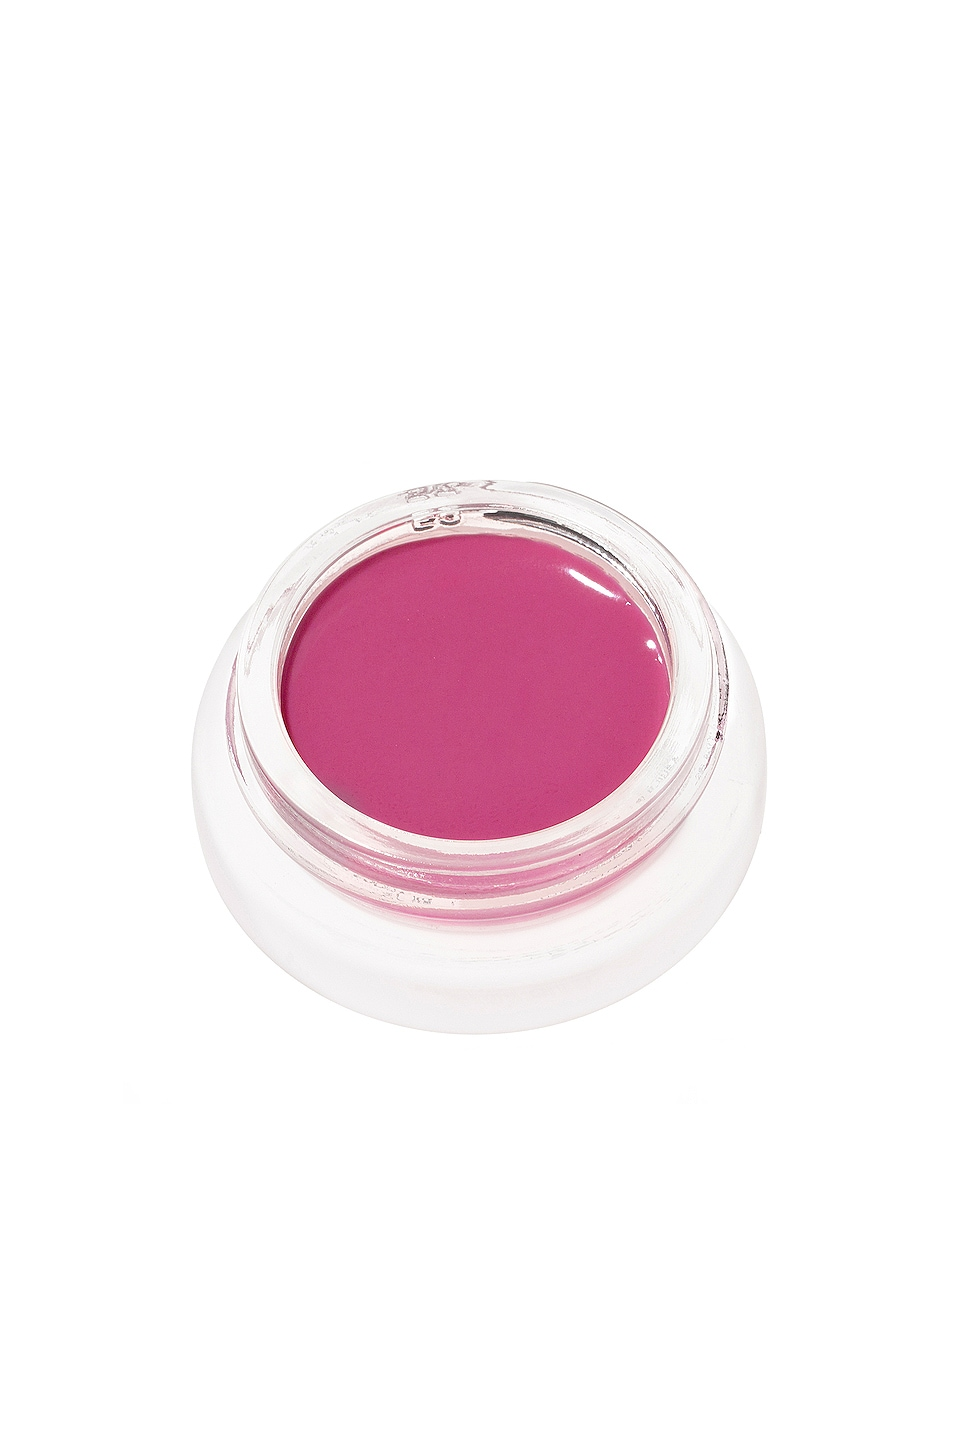 RMS Beauty Lip Shine in Sublime